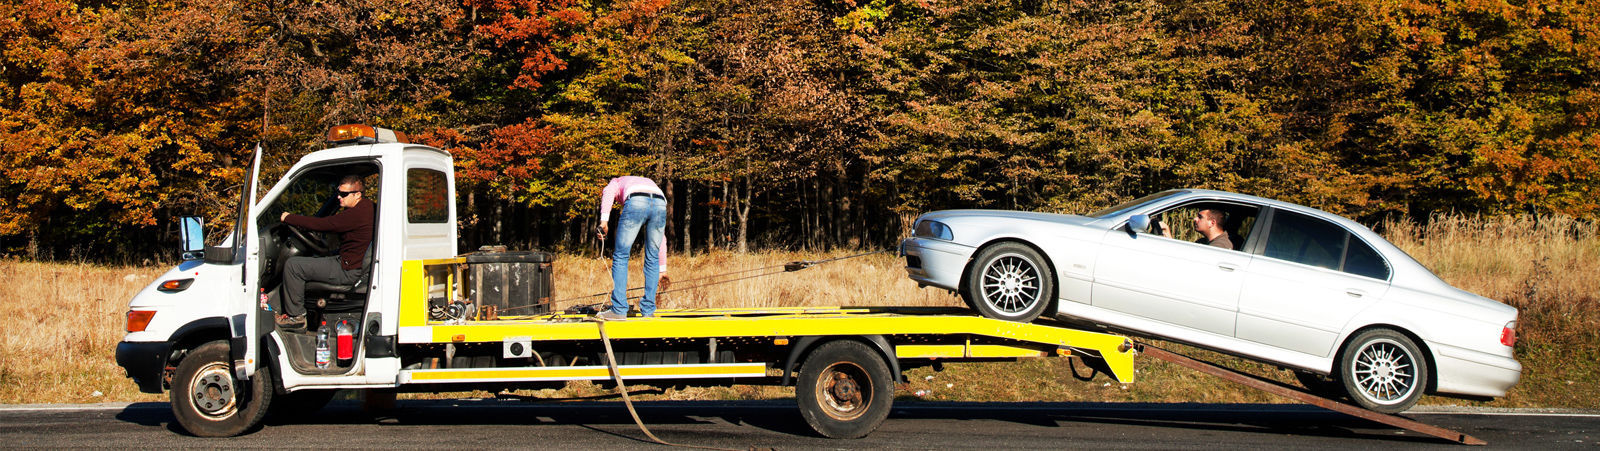 Your independent towing service in Marlborough